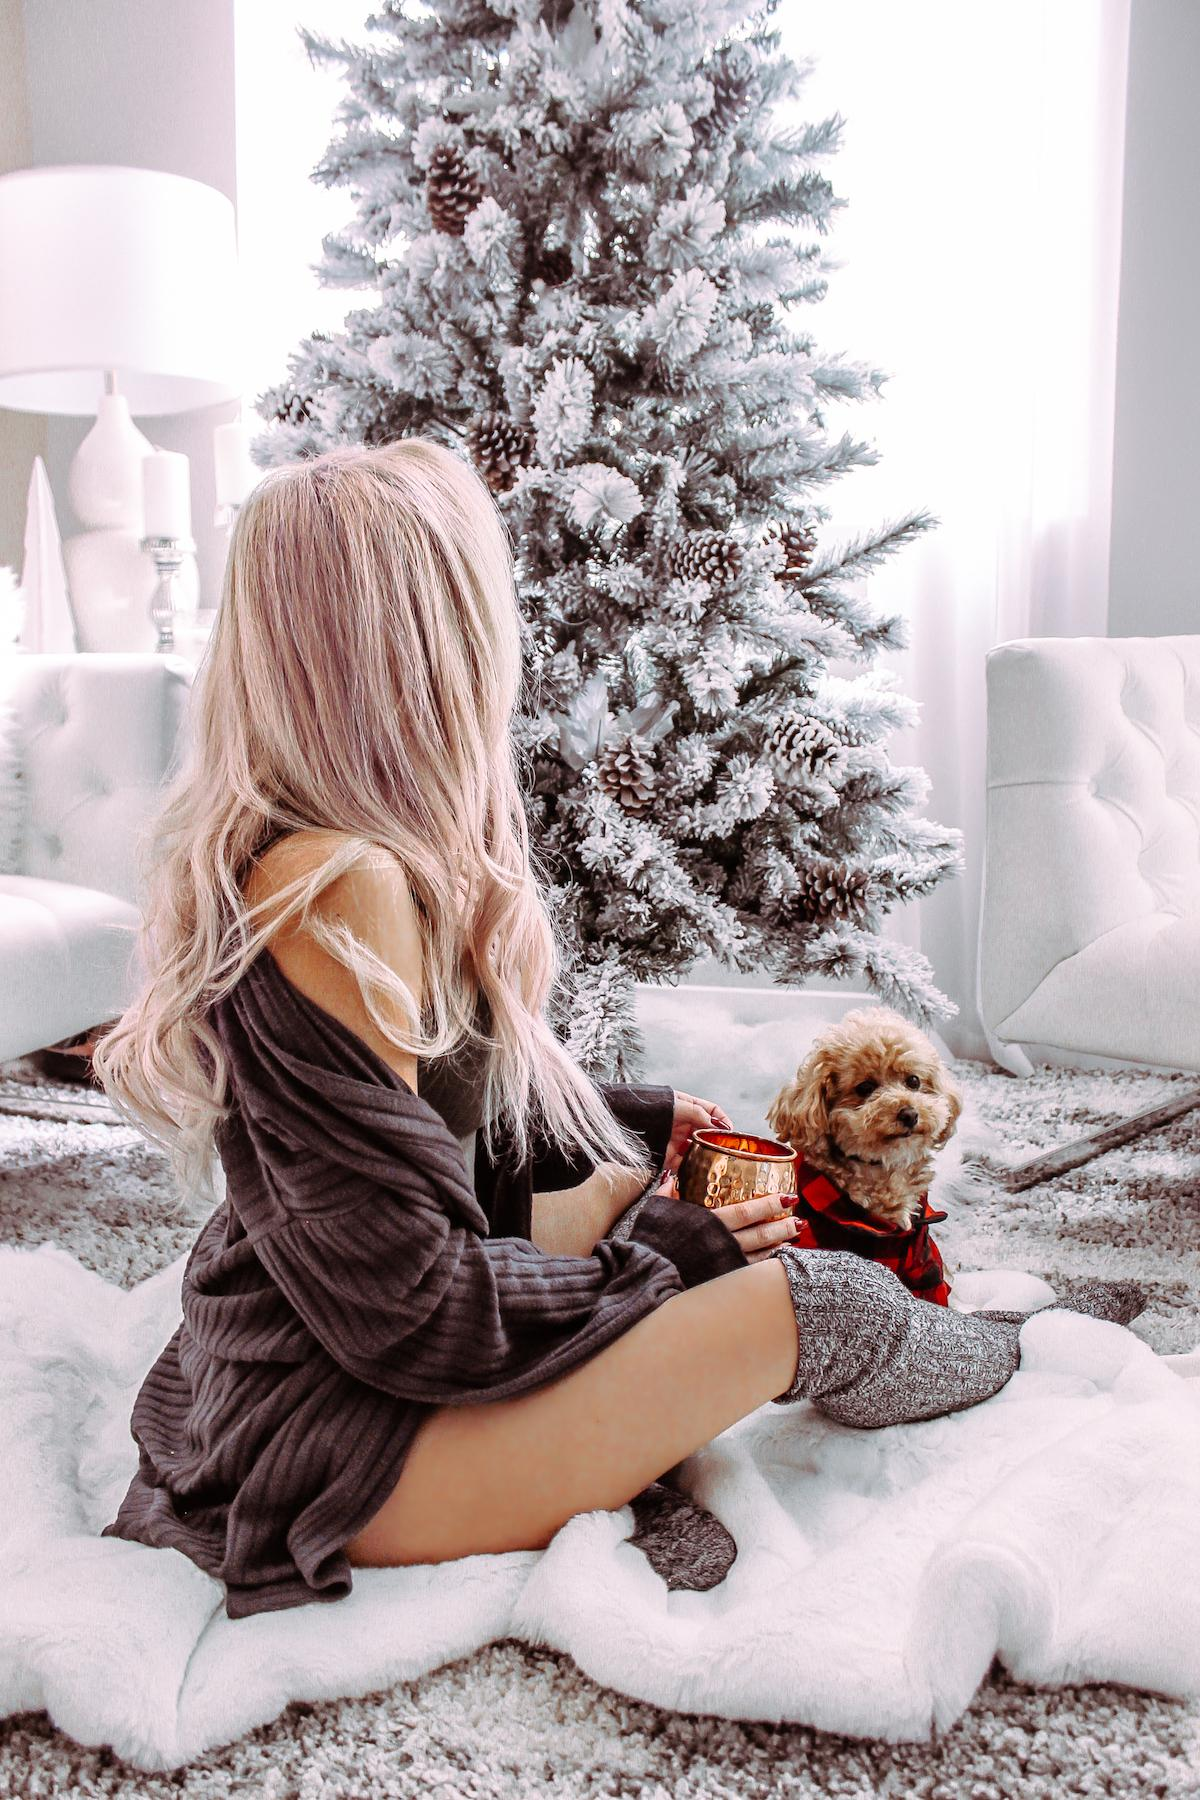 Blond girl in sweater and stockings with her dog sit near Christmas tree